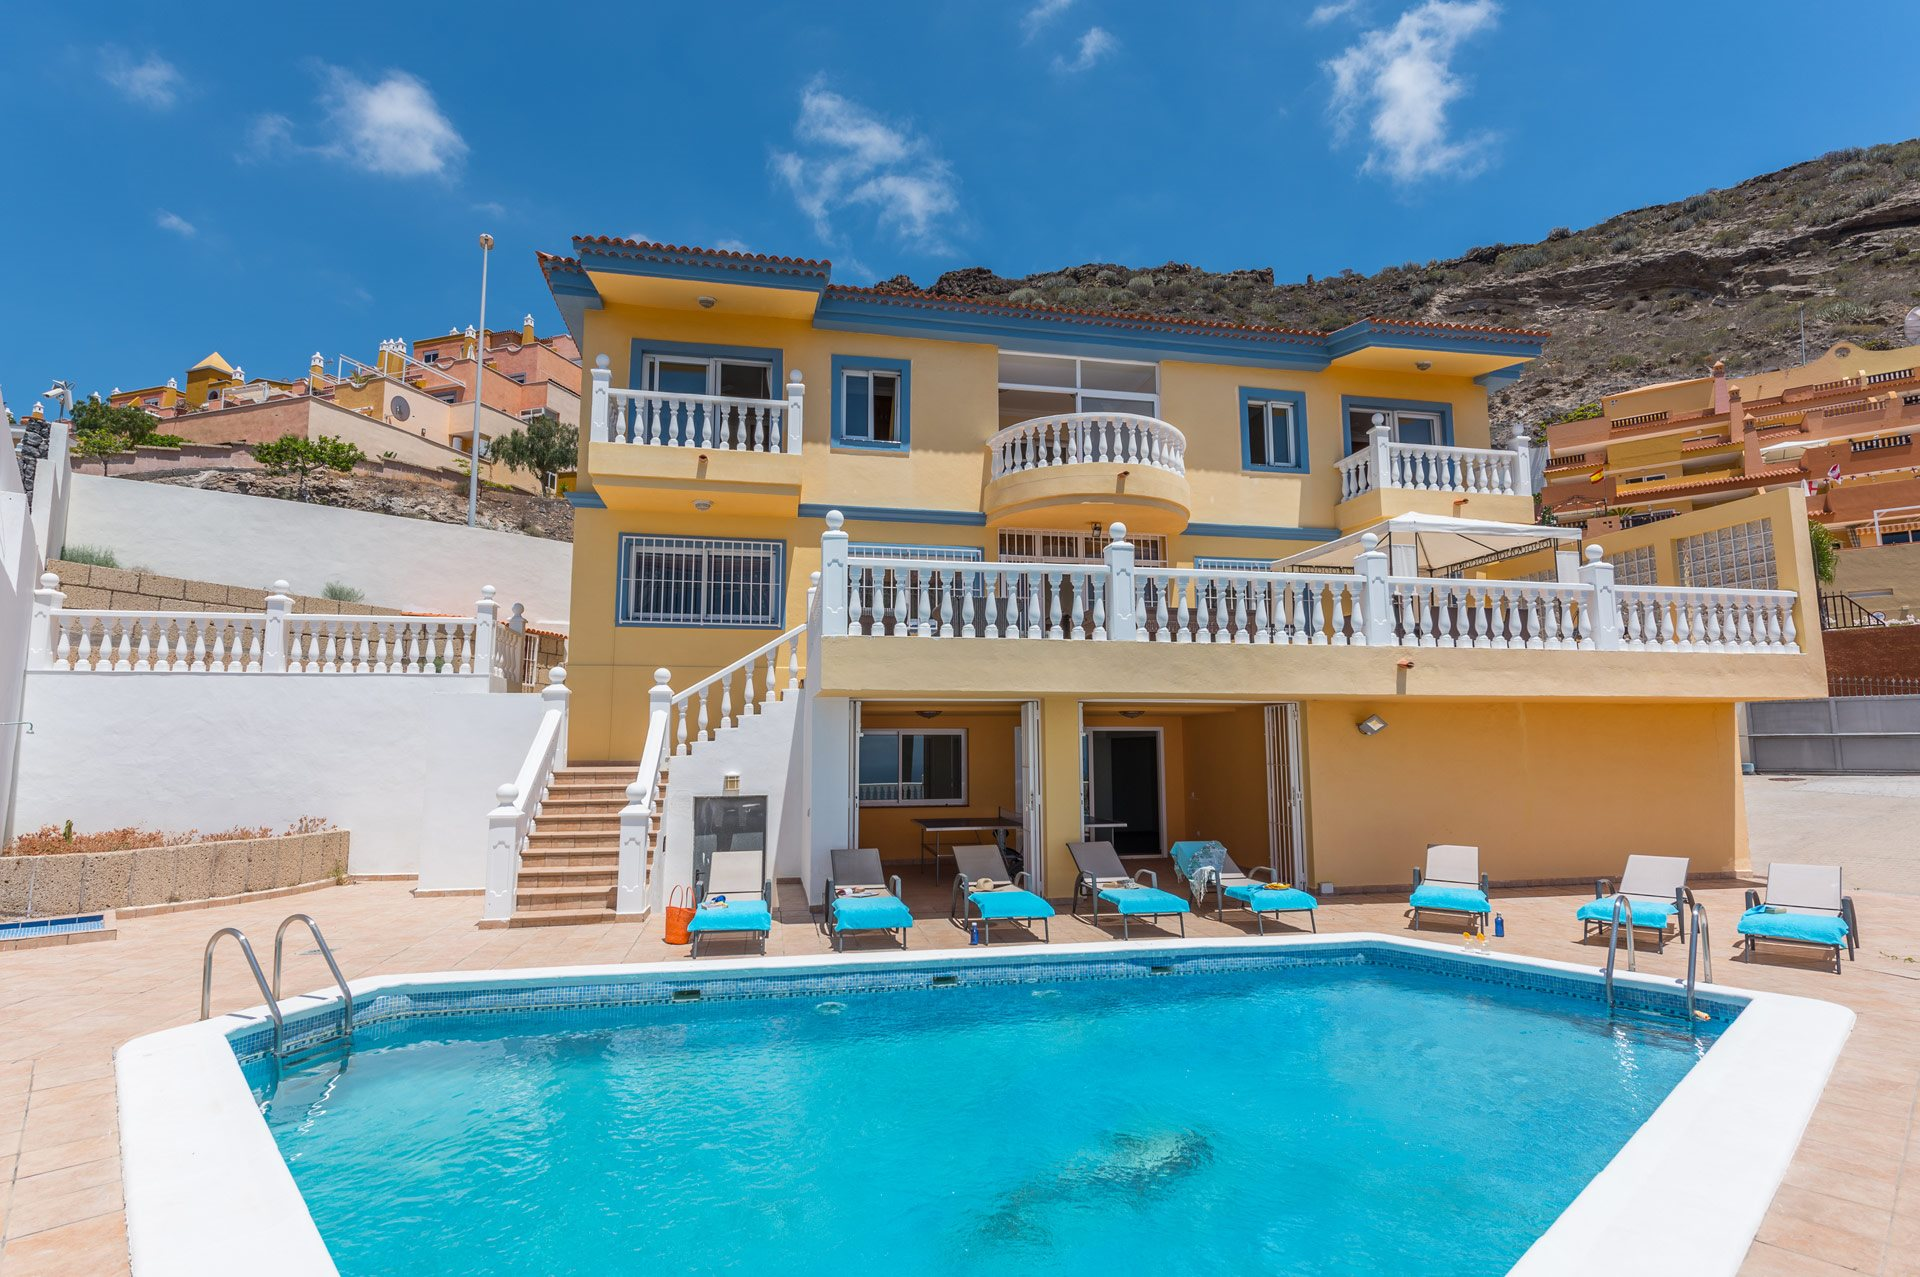 Tenerife | Holiday Rental | Luxury Villa | from €45 pppn